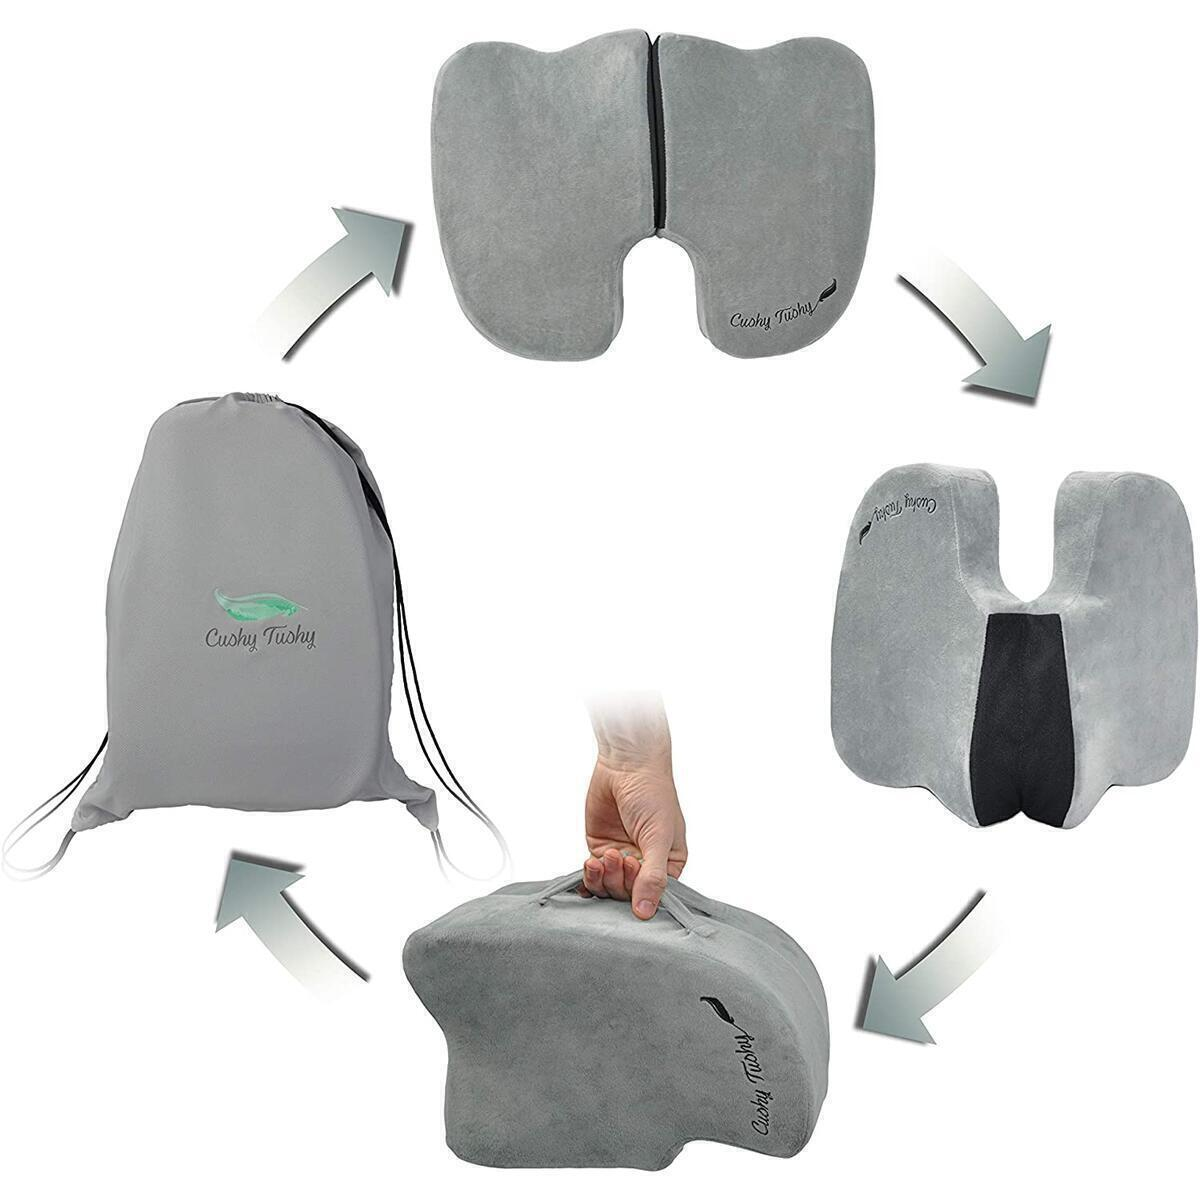 CushyTushy Foldable Coccyx Seat Cushion (Gray) - A Travel-Friendly Tail Bone Pain Relief Cushion for Home Use, Office Chairs, and Car Seats